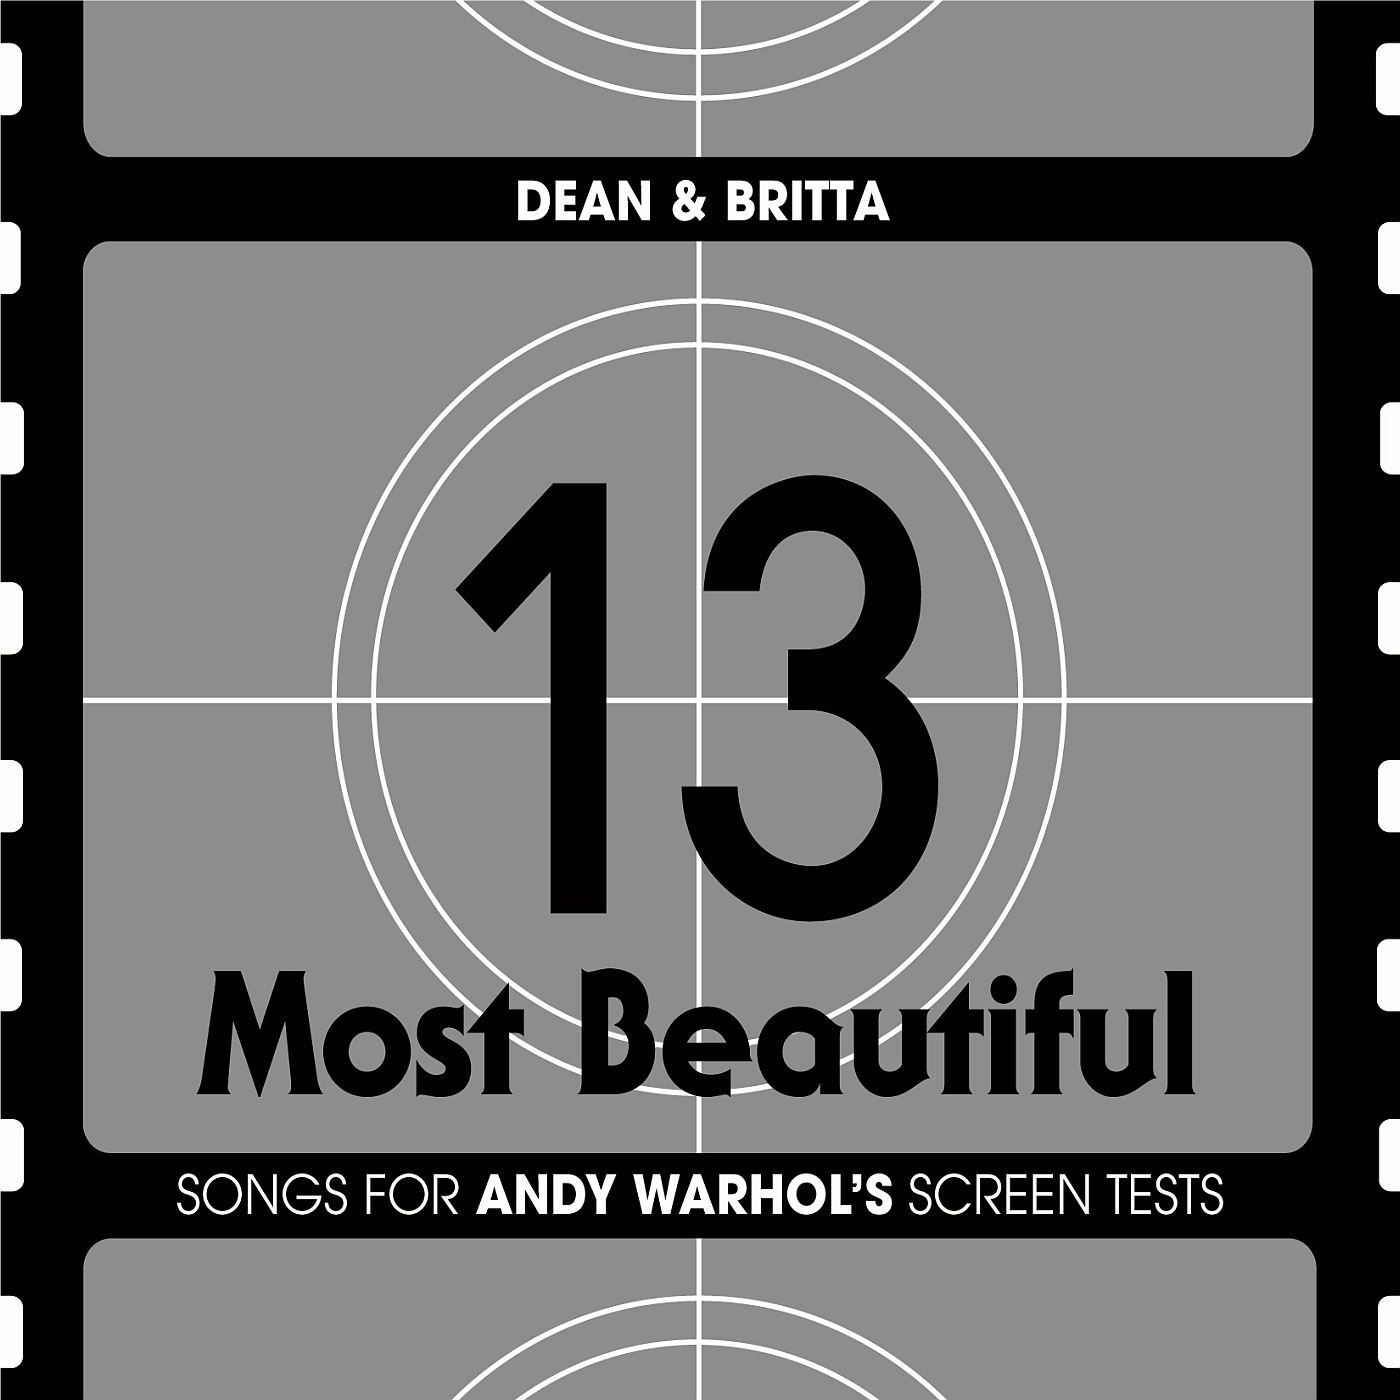 13 Most Beautiful: Songs for Andy Warhol's Screen Tests sleeve image